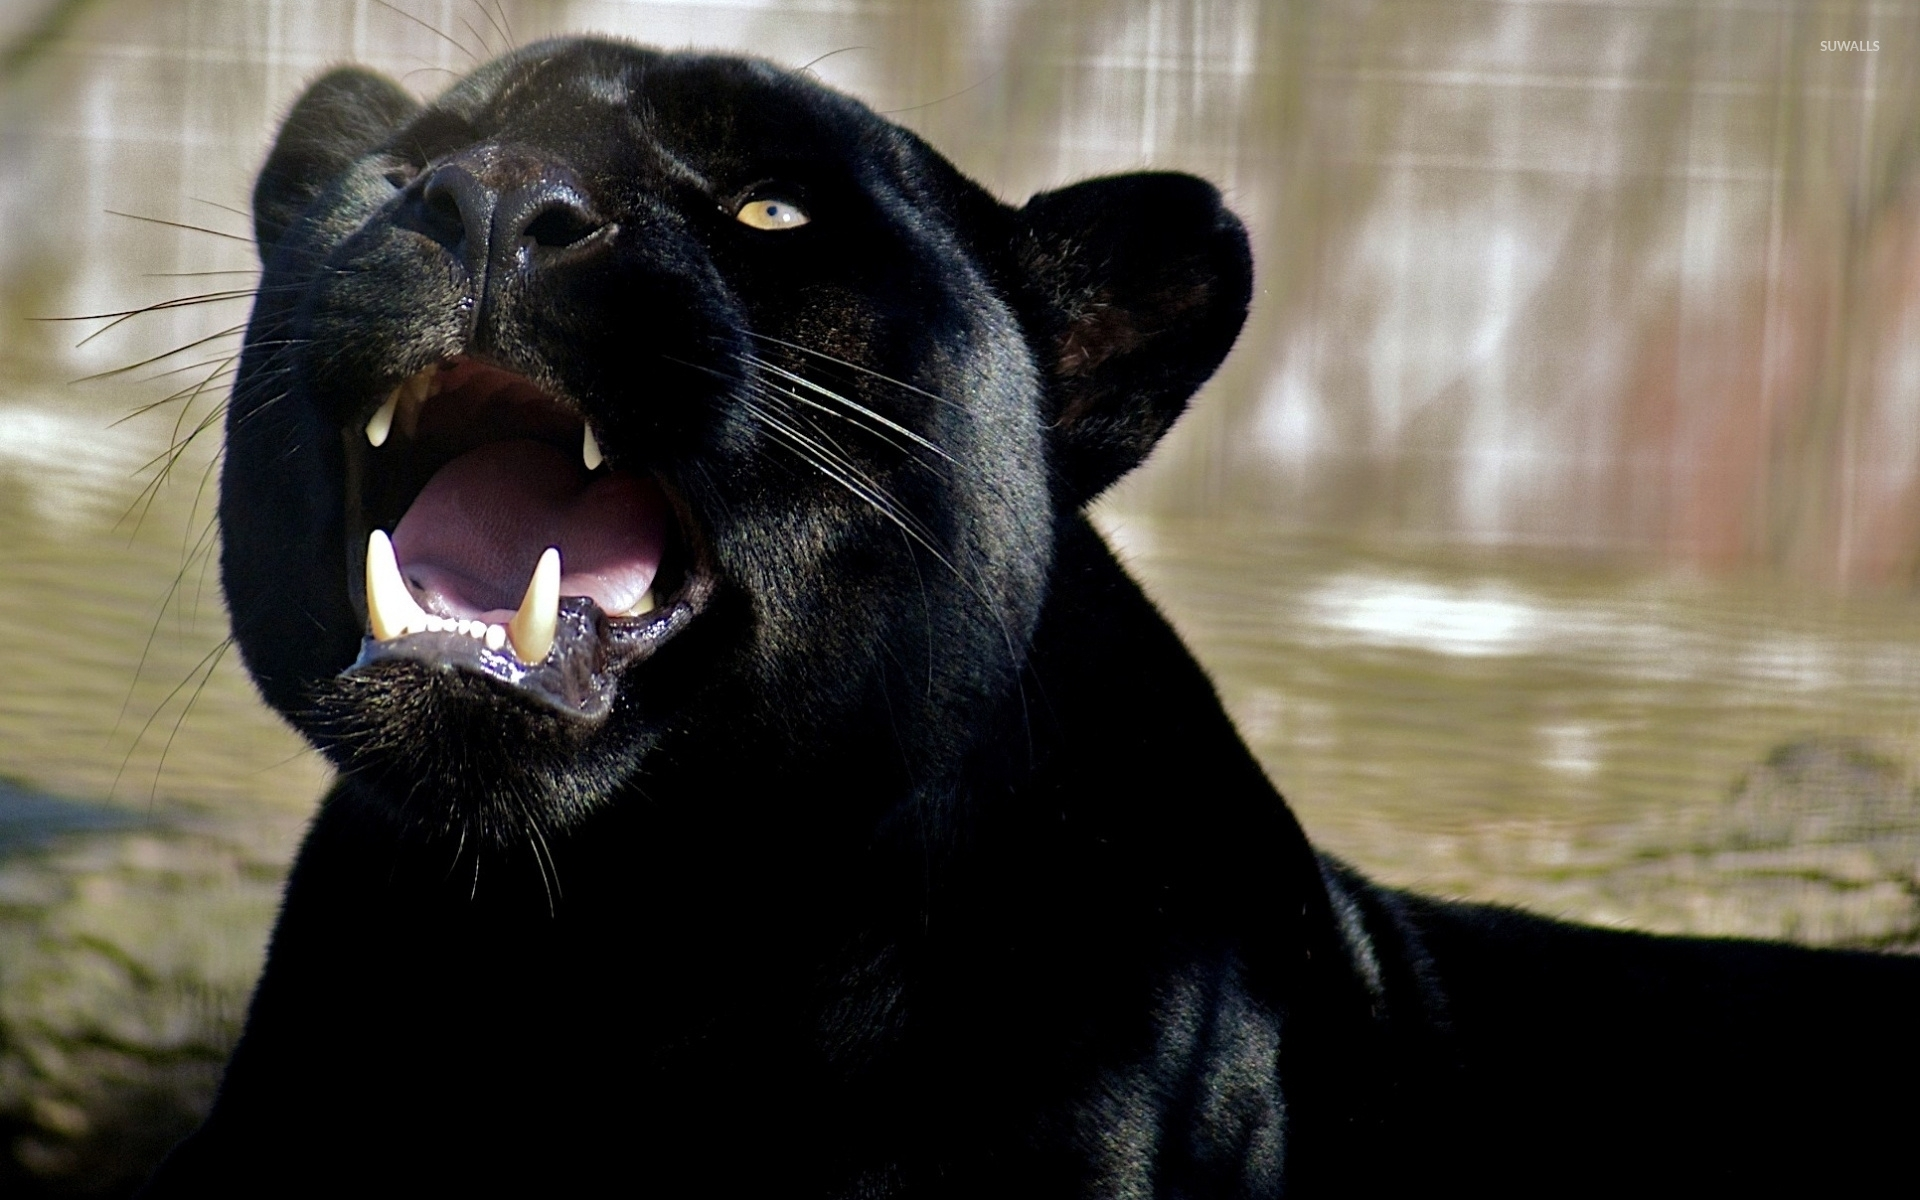 Roaring Black Panther Wallpaper Animal Wallpapers 47284